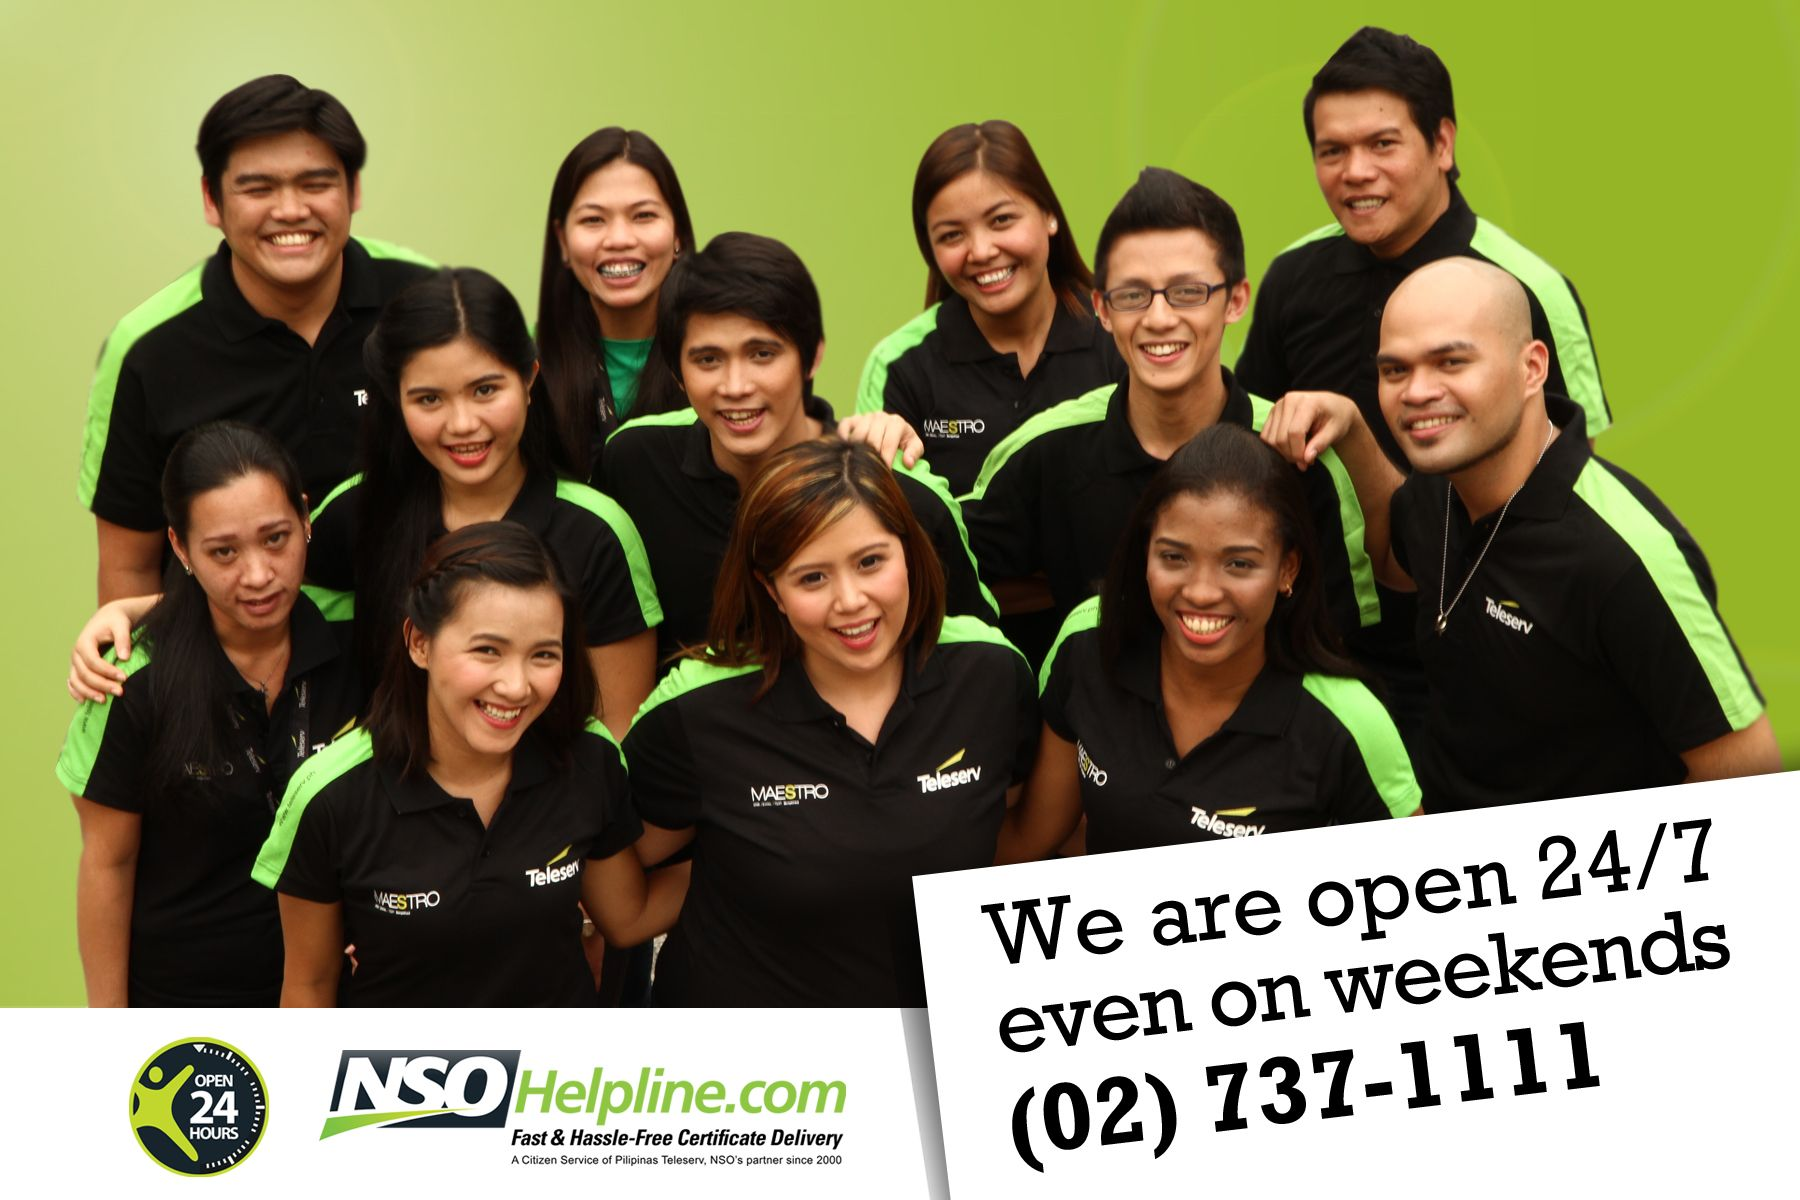 www.NSOHelpline.com is open to serve 24 hours a day, 7 days a week ...